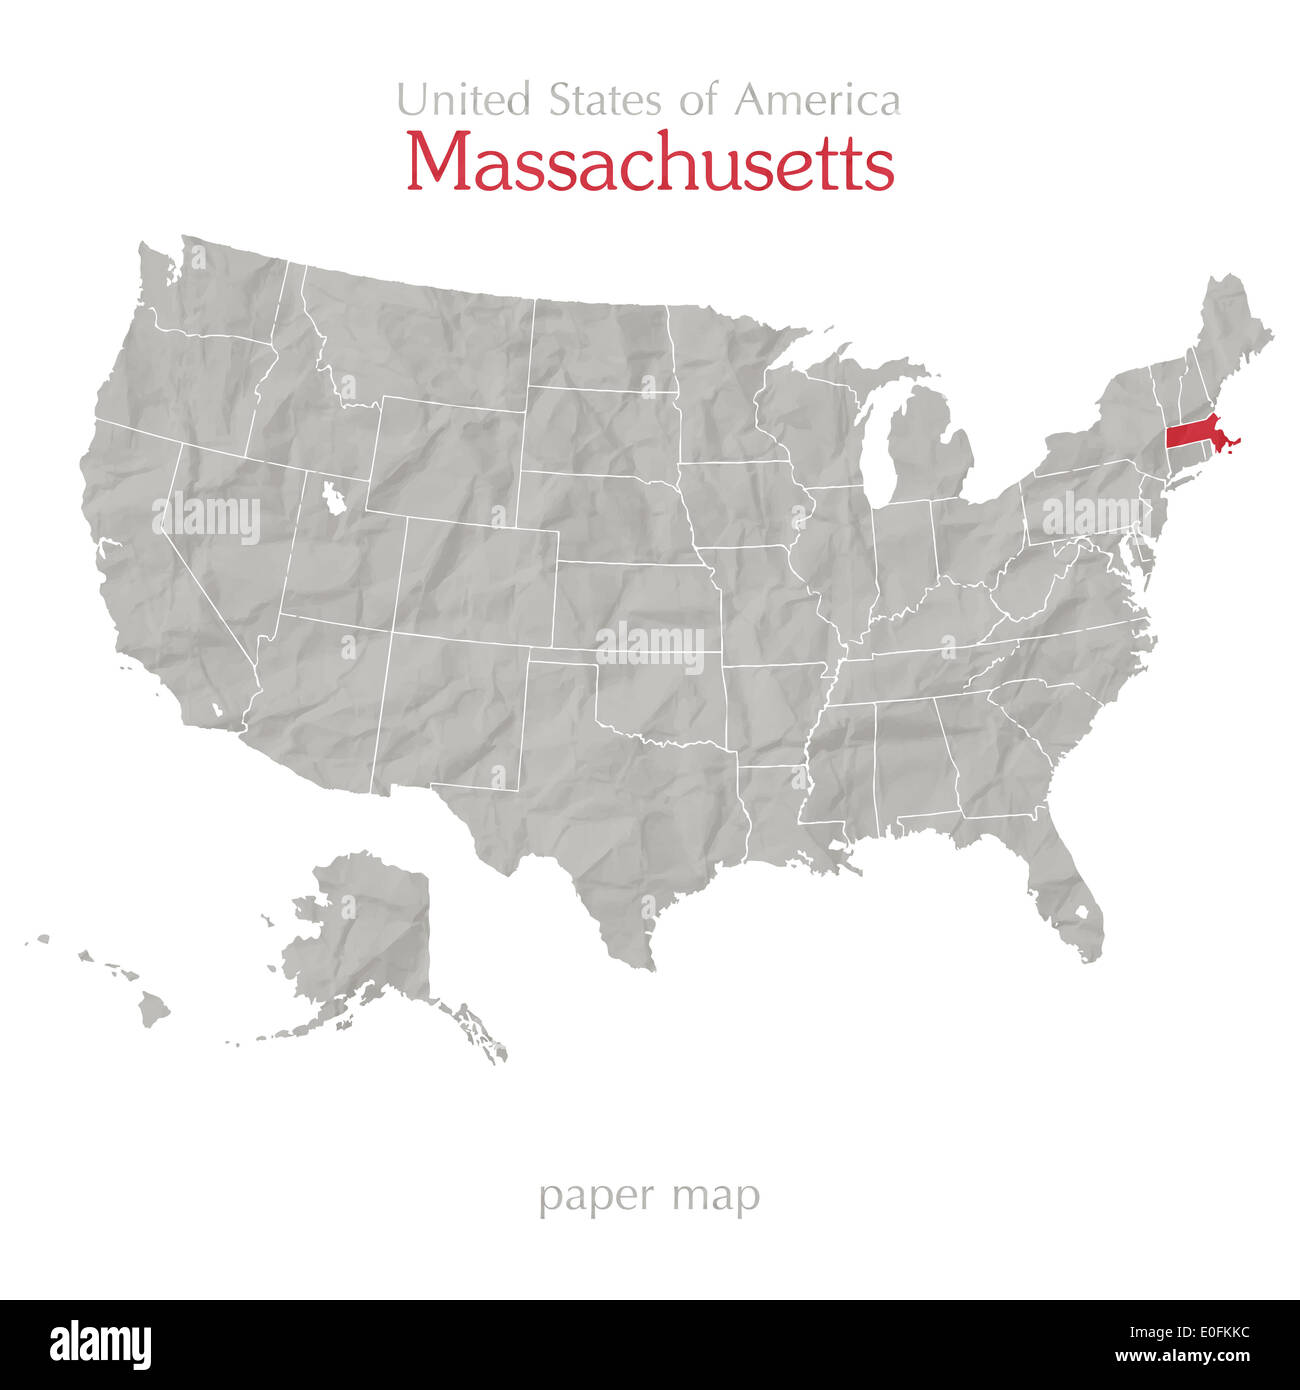 United States Of America Map And Massachusetts State Territory On